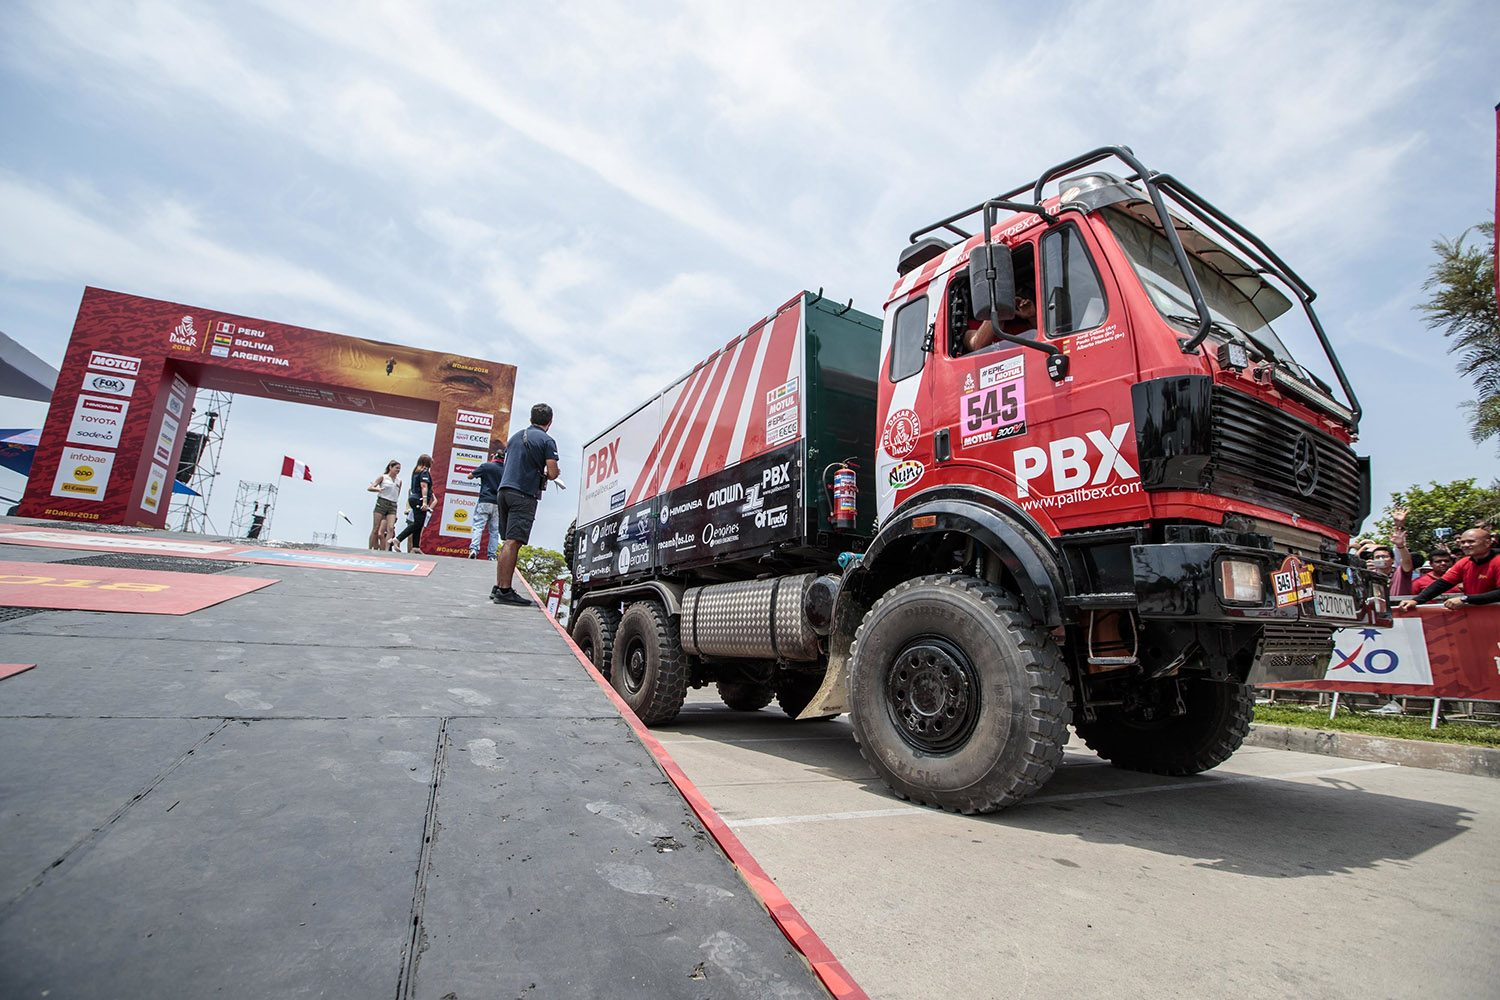 545-2018-01-06-PBX DAKAR 2018 TEAM (2)